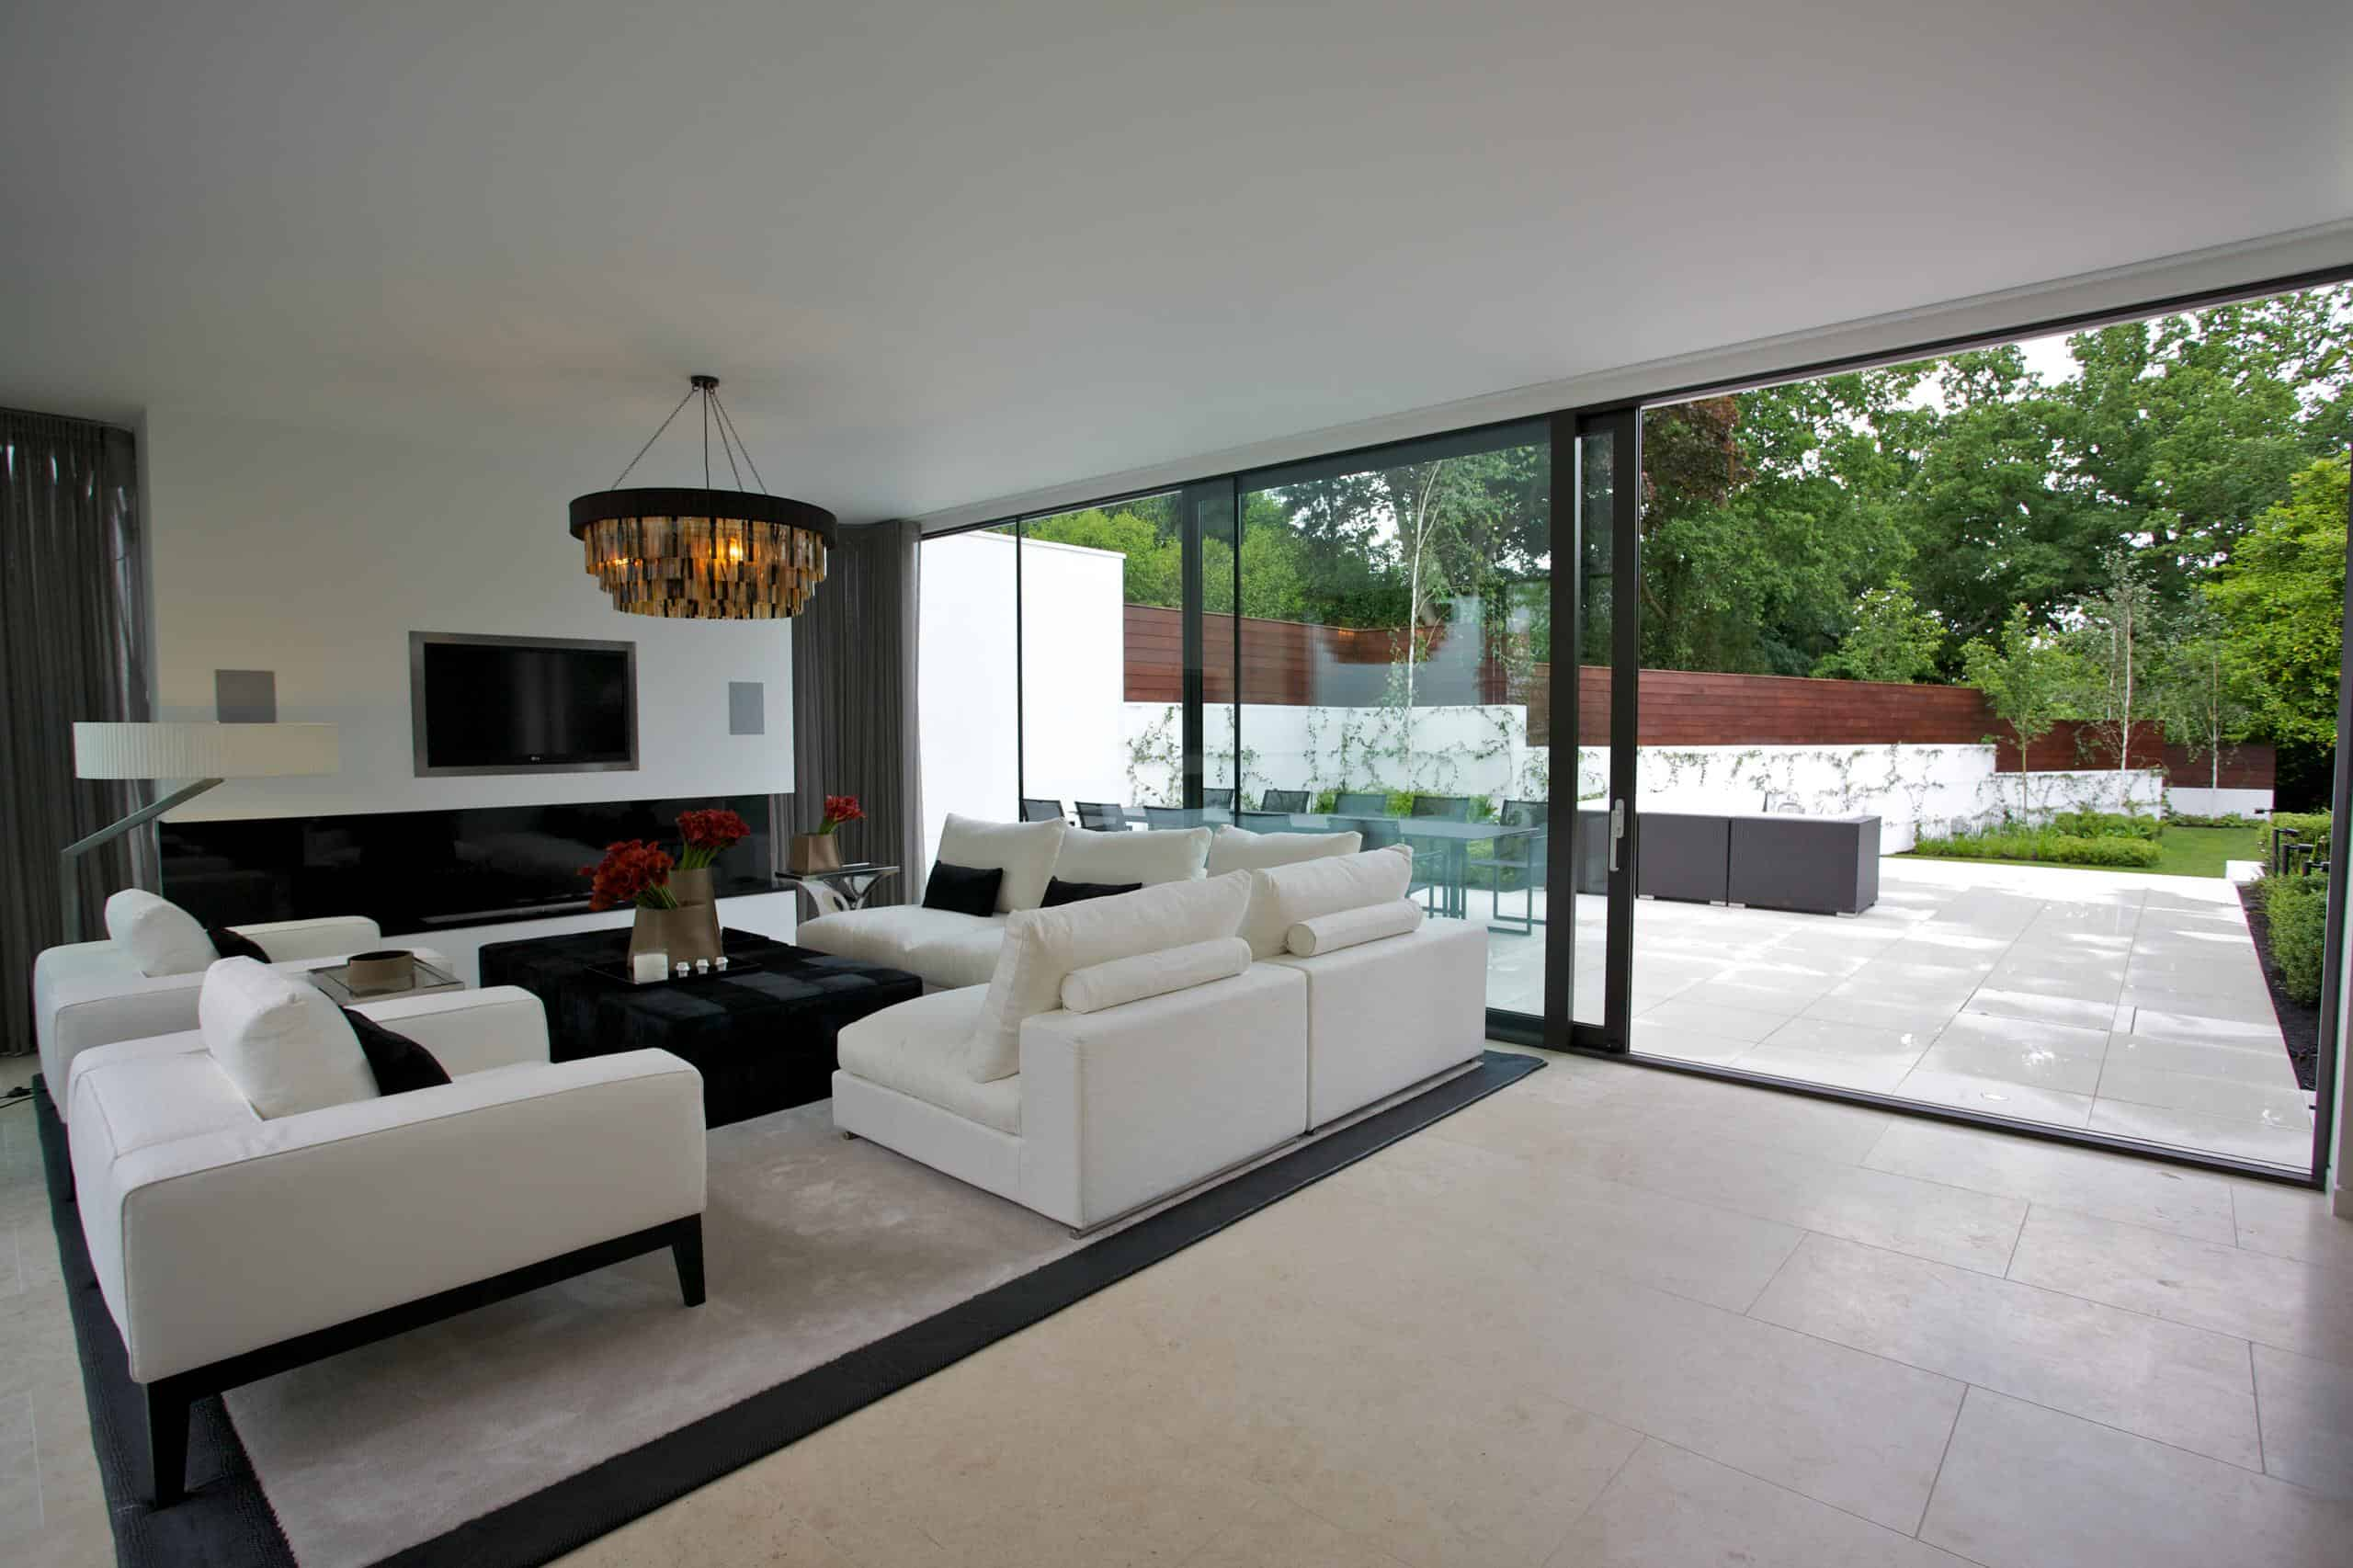 Wide sliding glass patio doors are